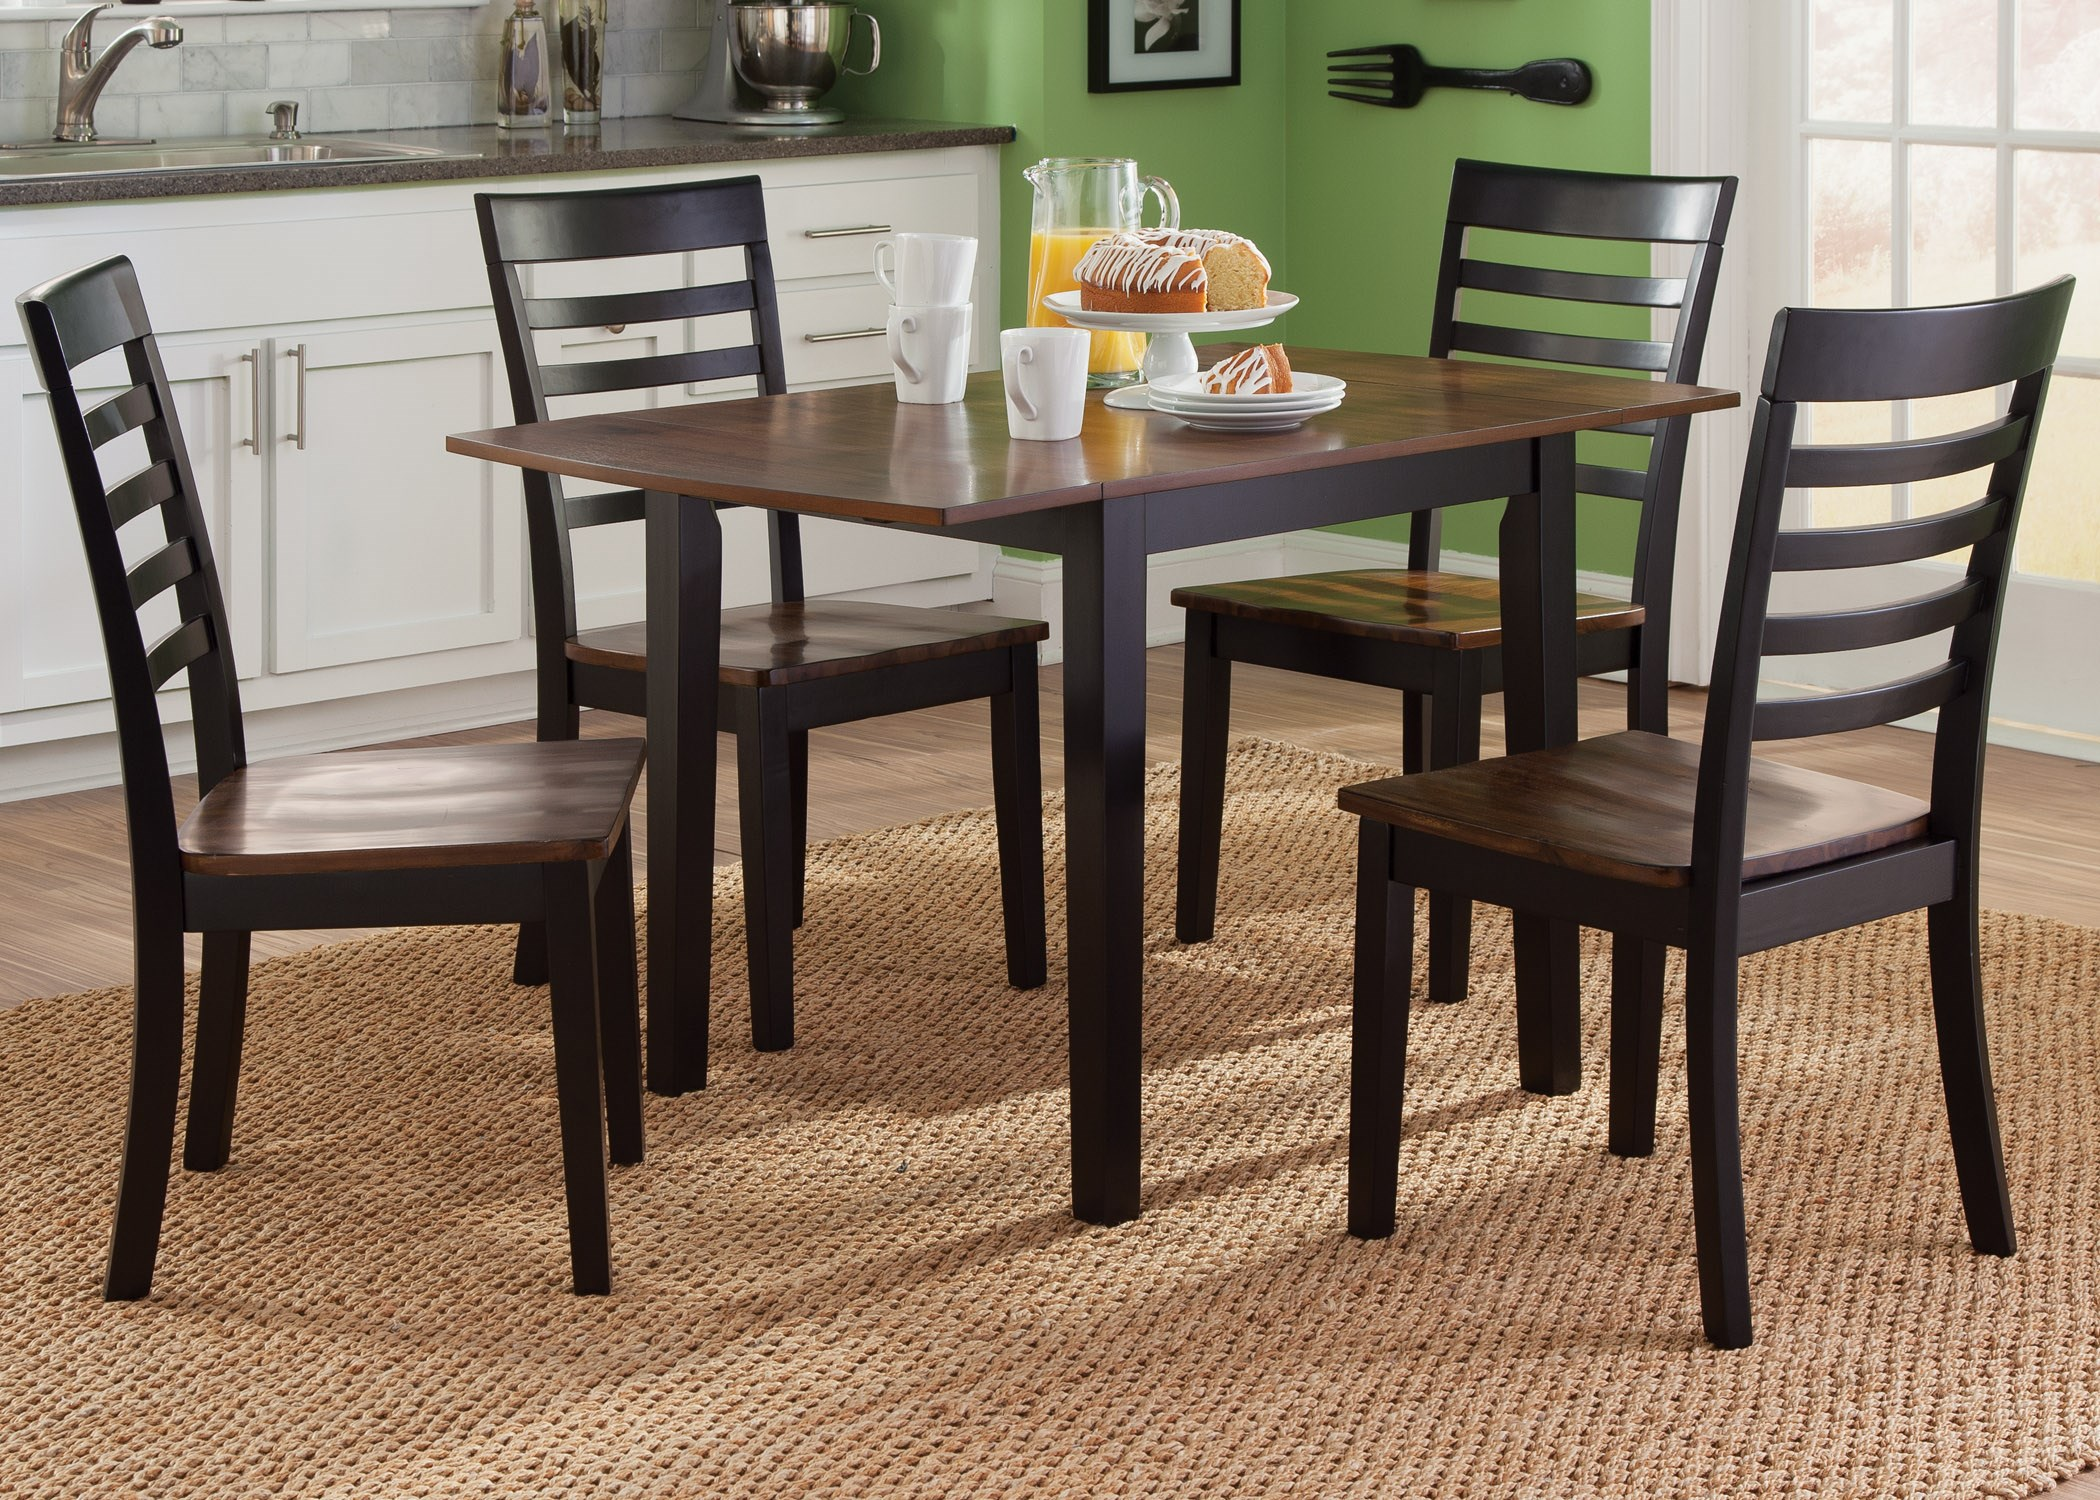 Cafe Dining 5 Piece Drop Leaf Table and Slat Back Chair Set by Liberty Furniture & Liberty Furniture Cafe Dining 5 Piece Drop Leaf Table and Slat Back ...